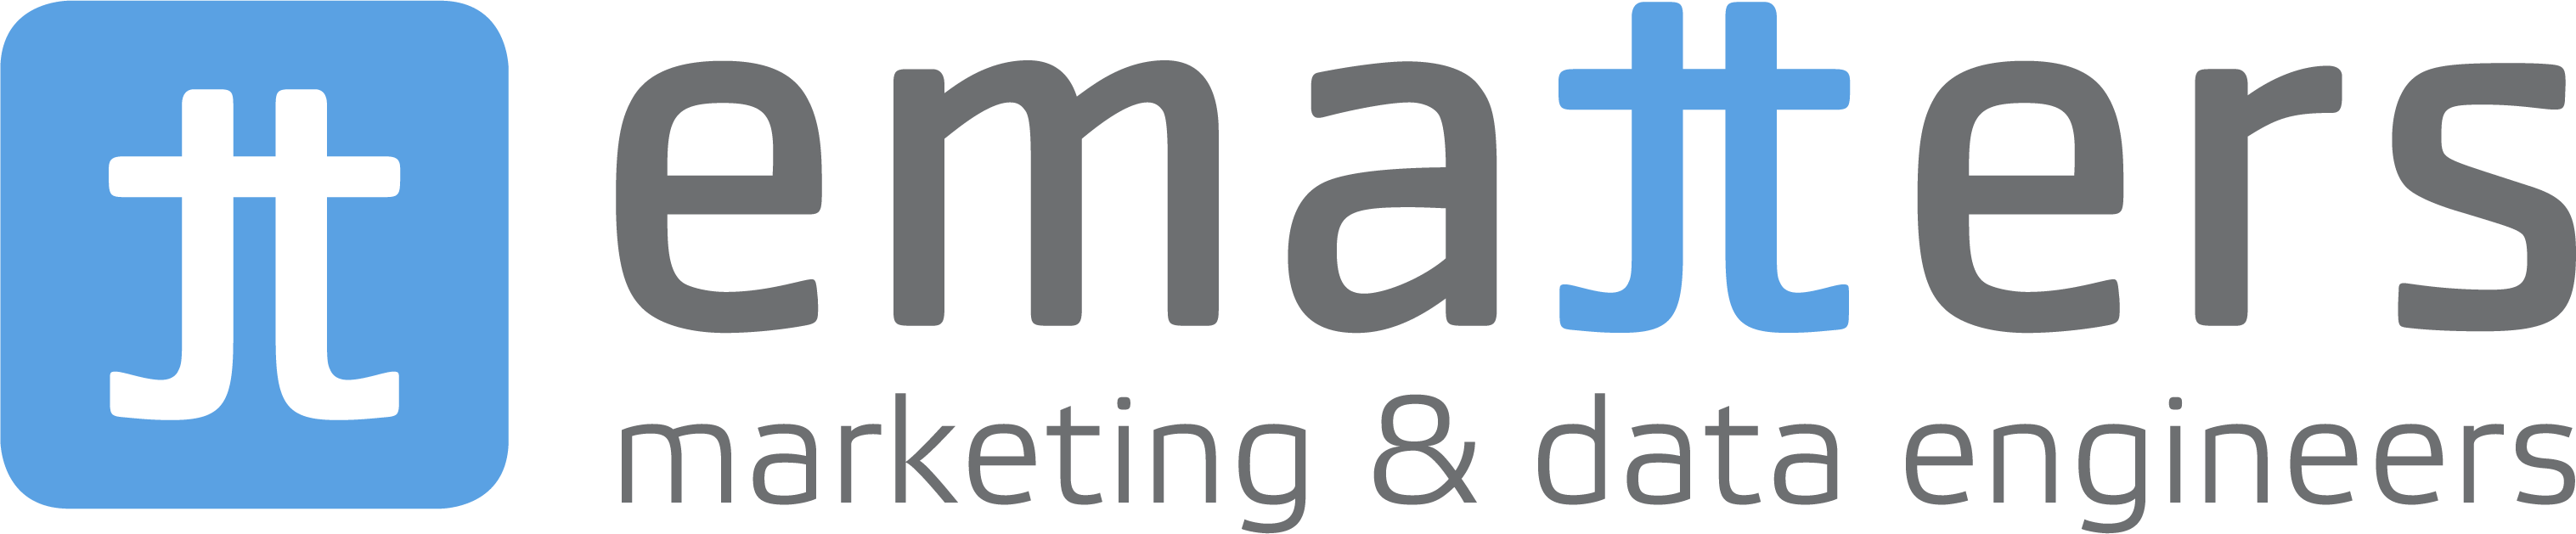 Ematters – Marketing & Data Engineers